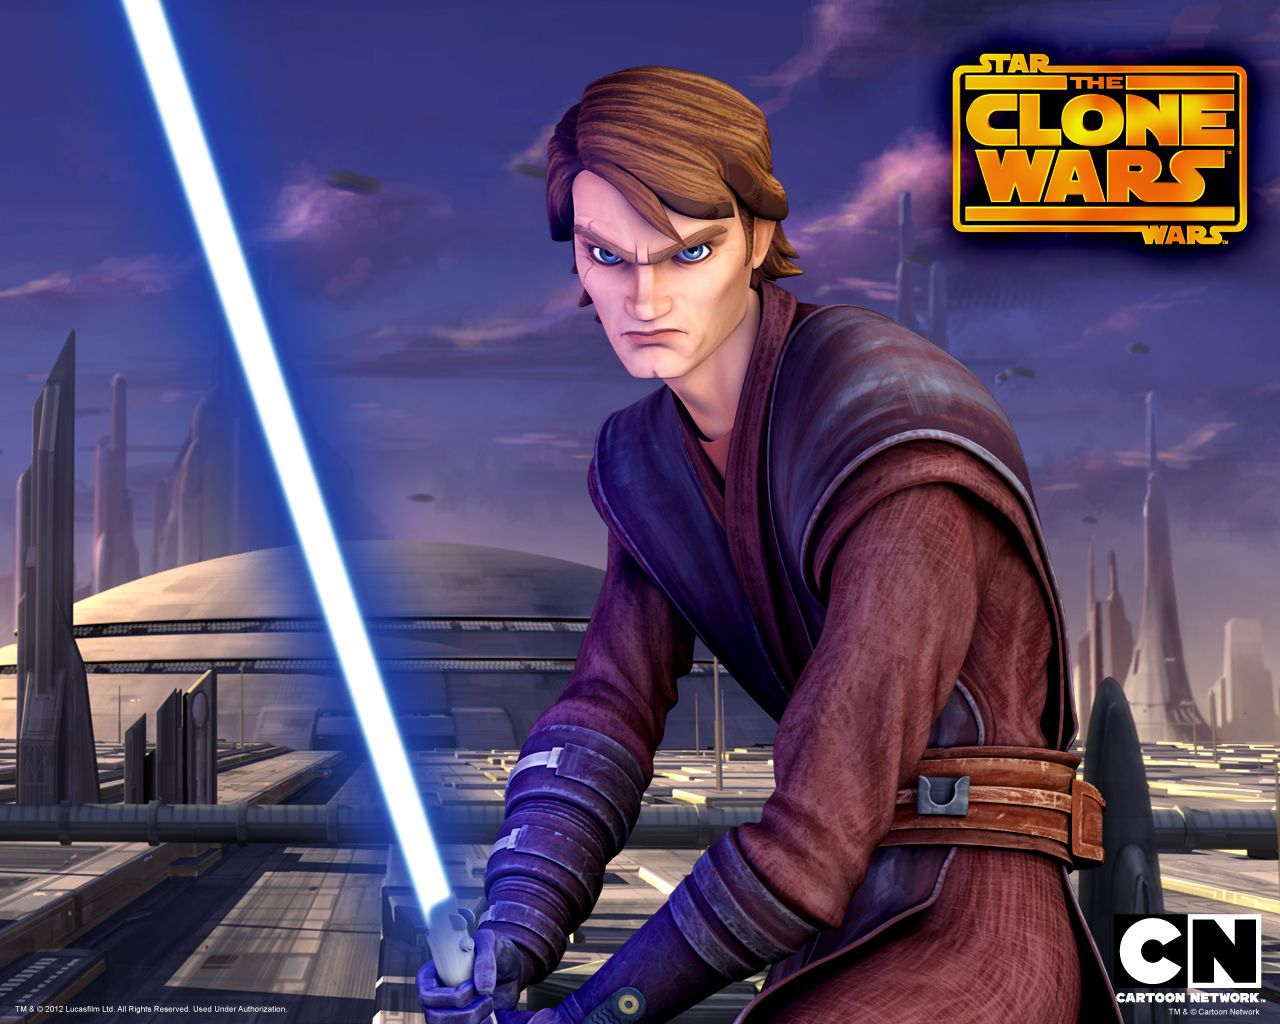 Star Wars The Clone Wars Pictures Wallpapers And Downloads